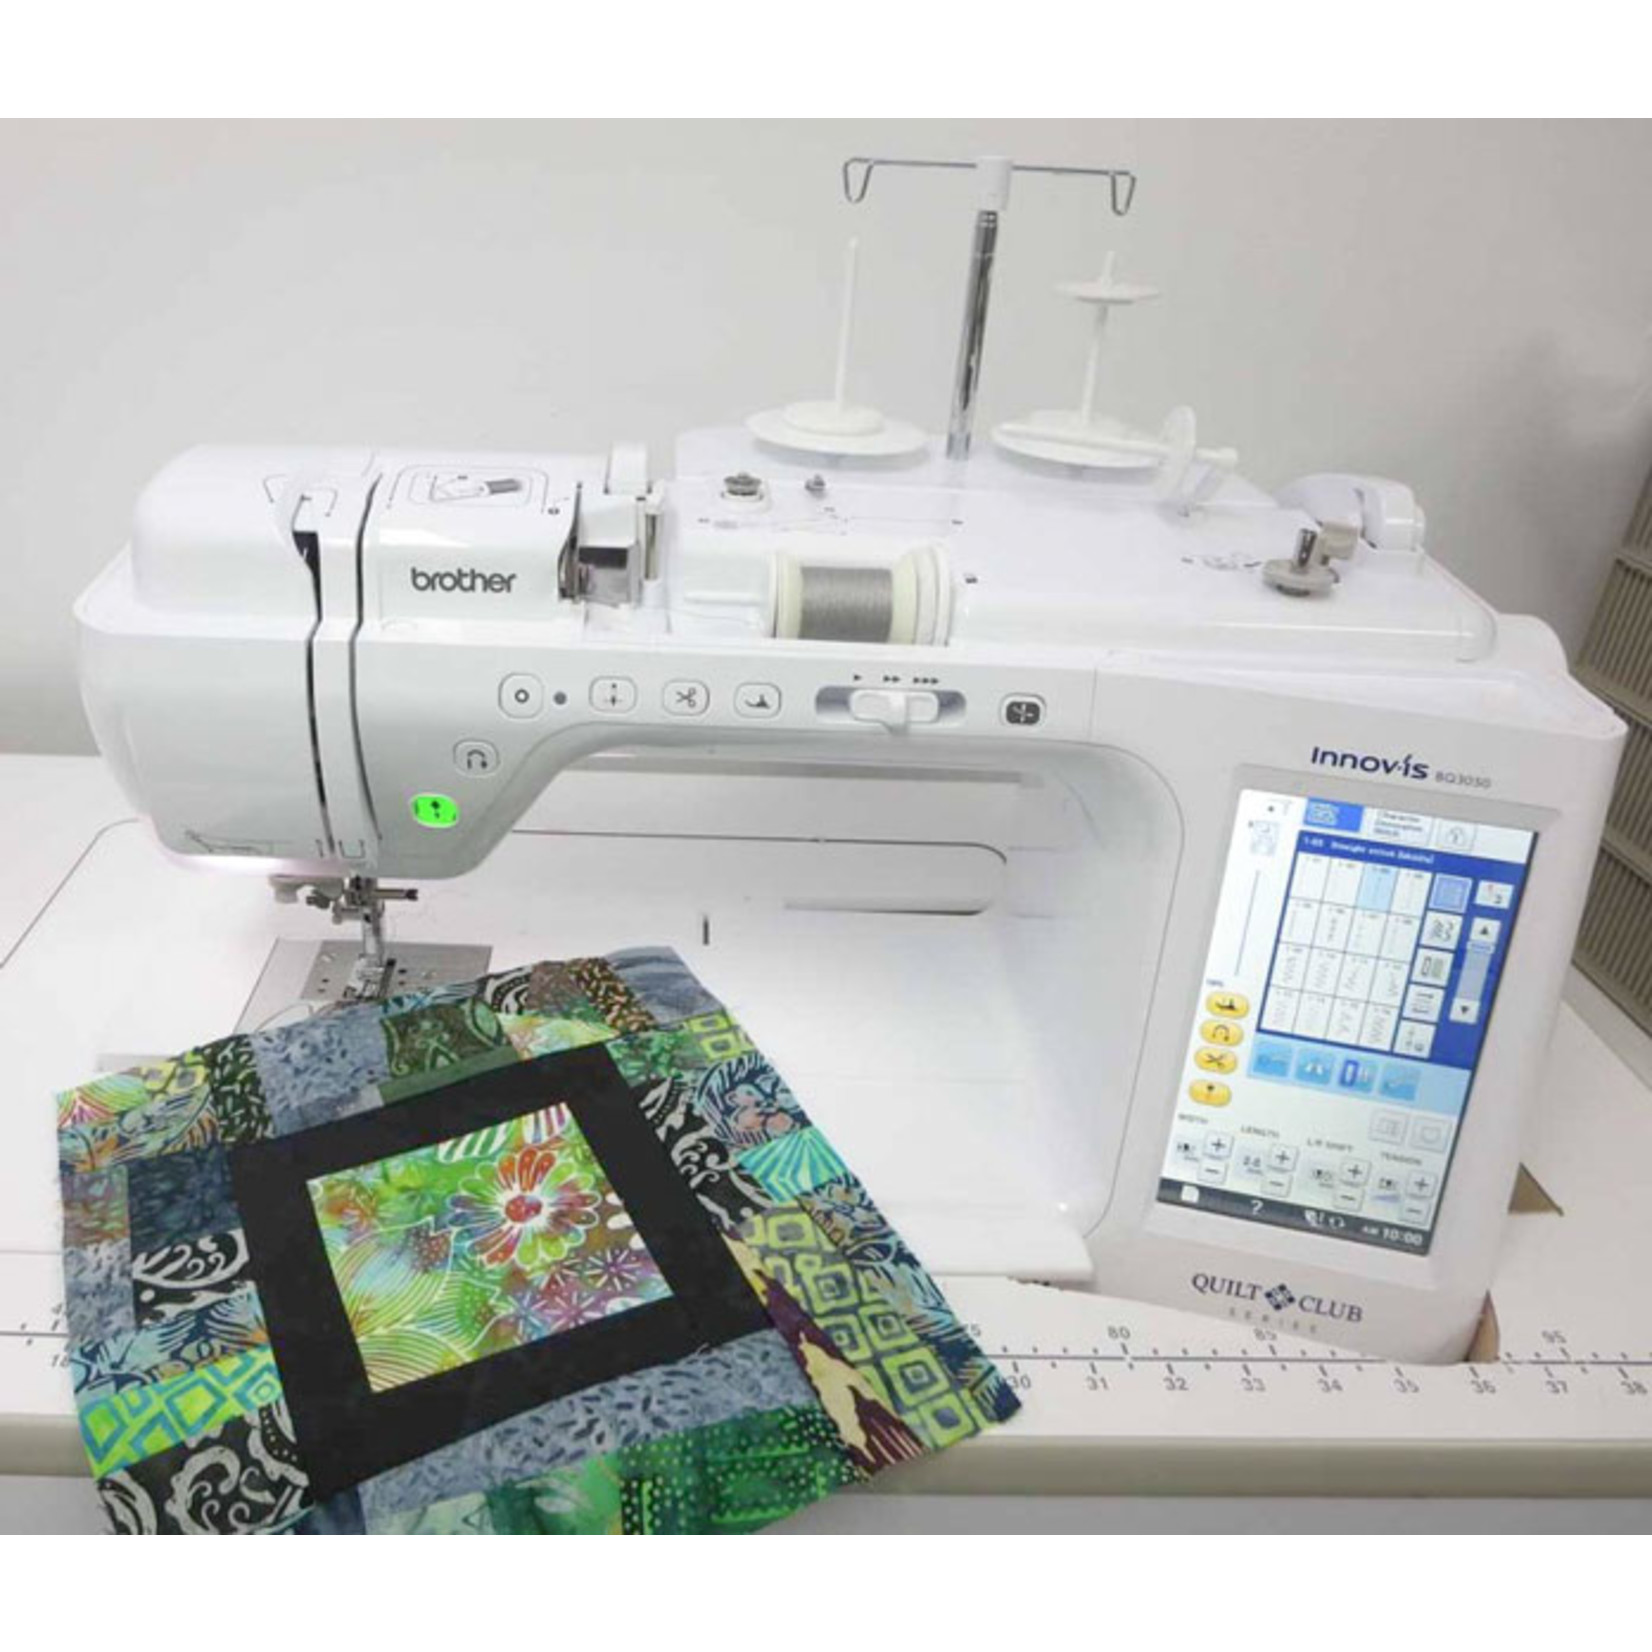 BROTHER Brother BQ3050 The Achiever Sewing & Quilting Machine